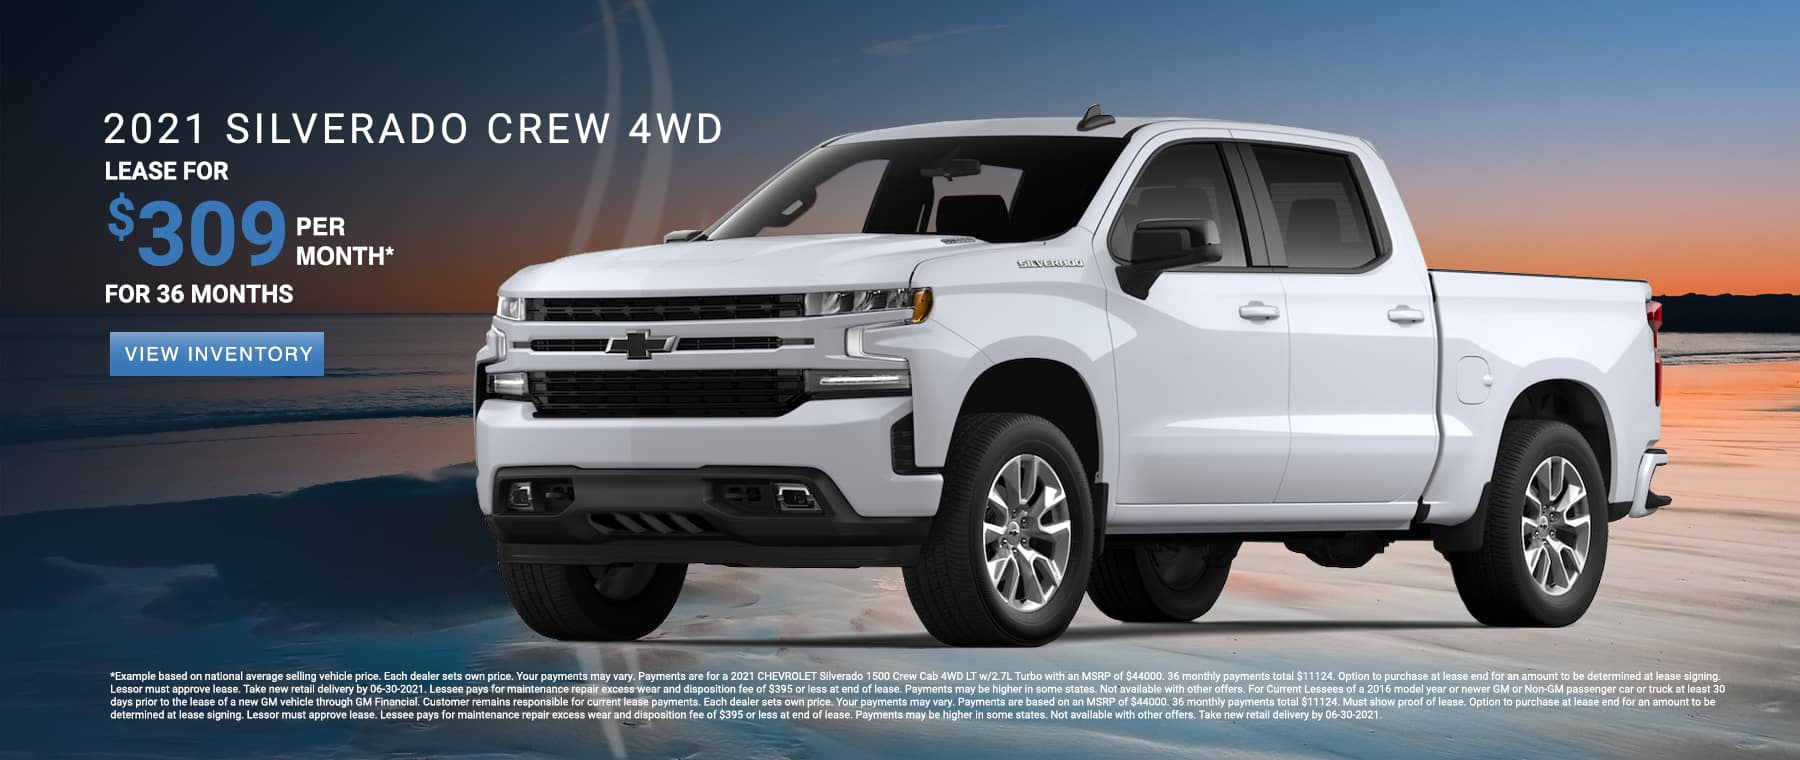 Lease a new Silverado for $309 per month. See dealer for details.